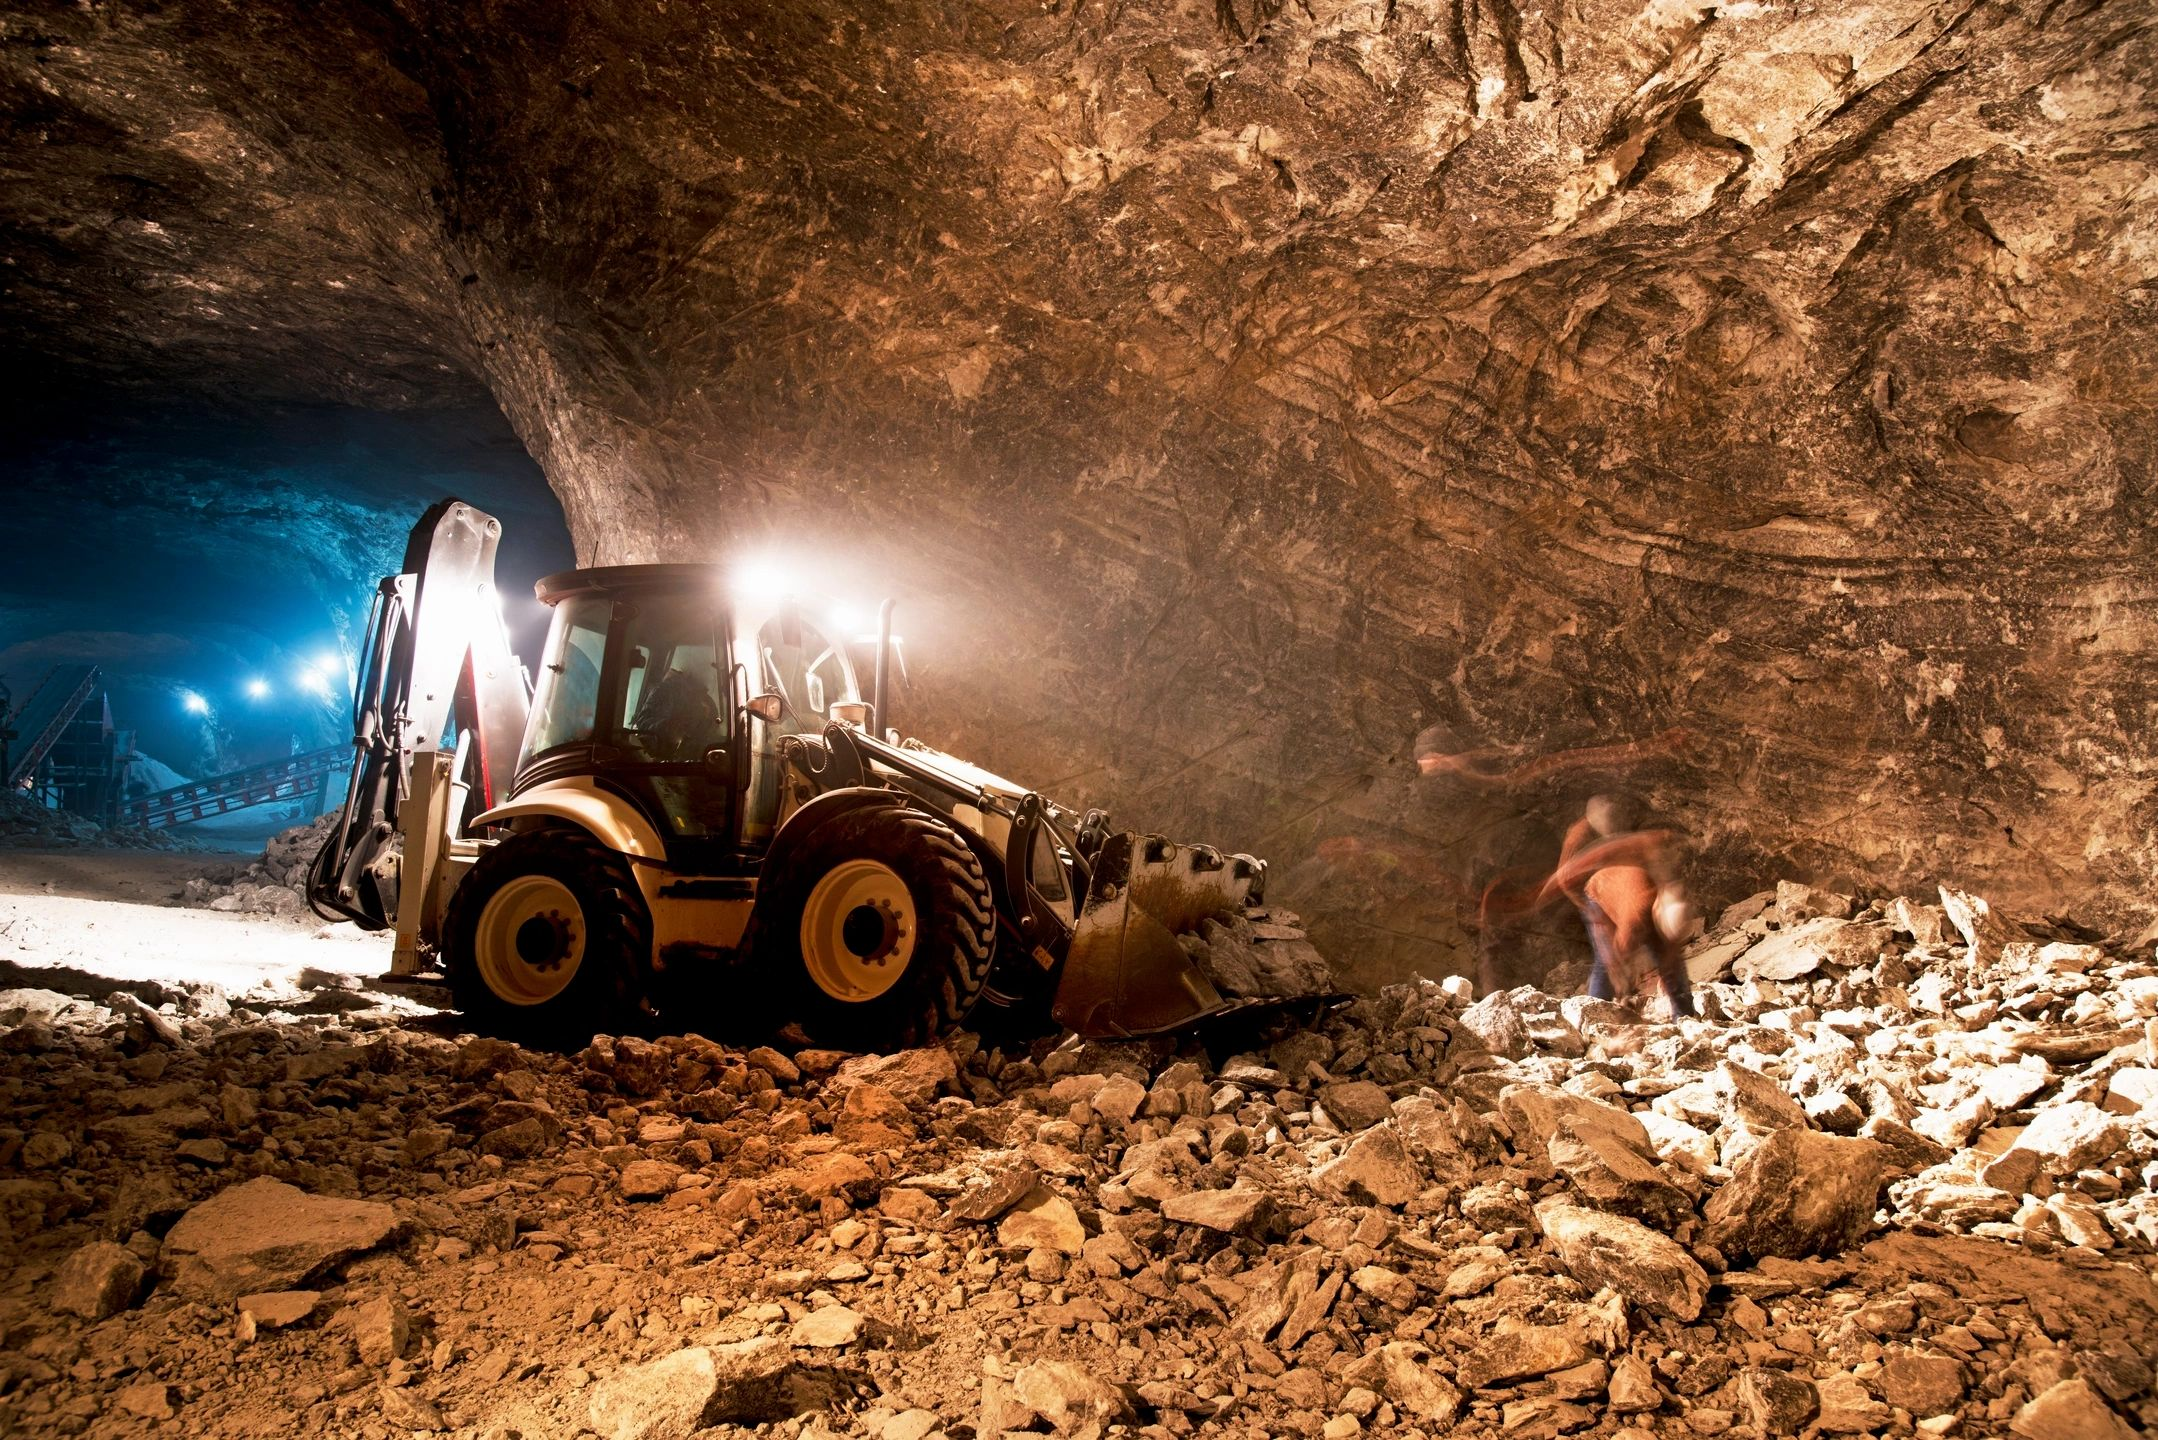 HOUSE BILL NO. 6135: THE PROPOSED FISCAL MINING REGIME BILL